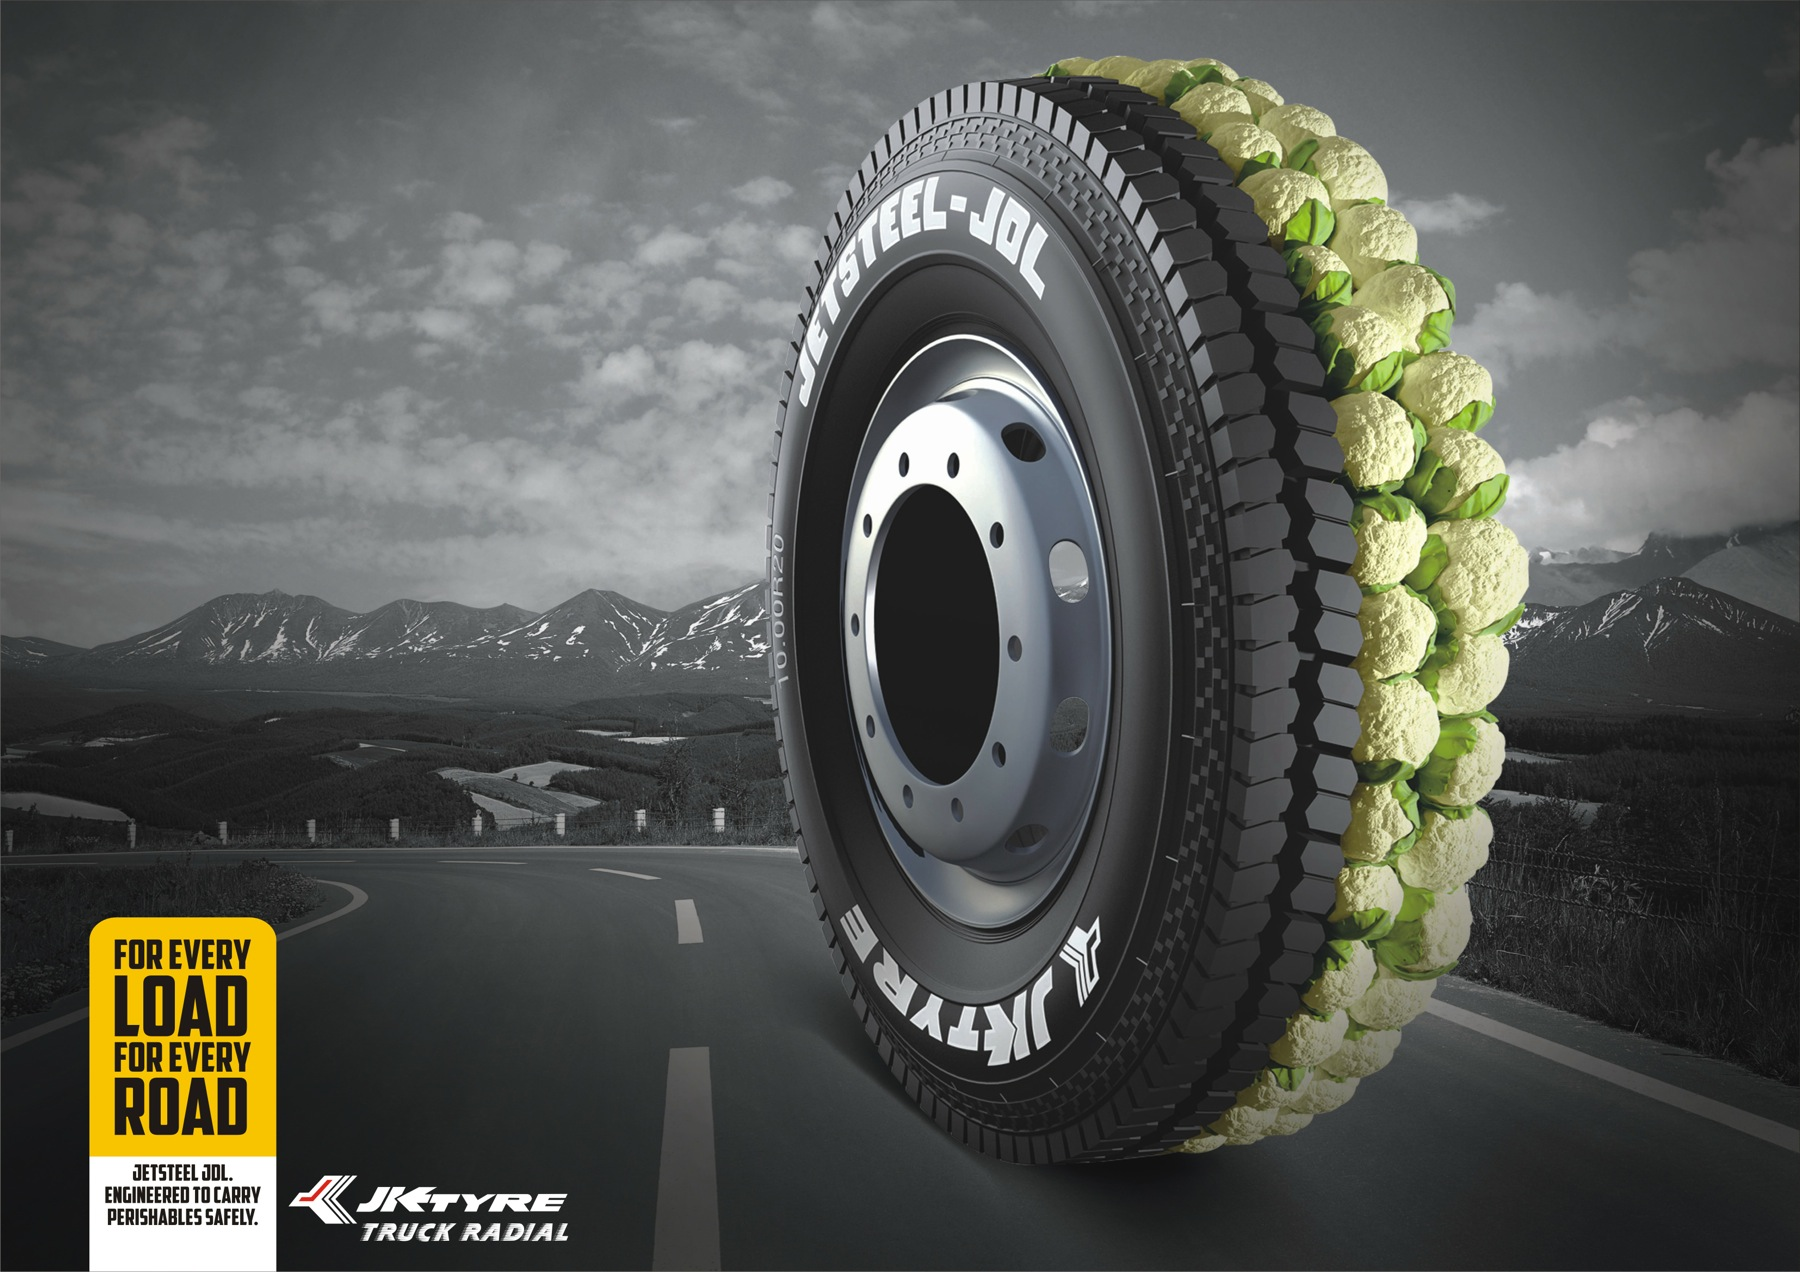 Tyre on pinterest print ads advertising agency and for Garage ad pneu